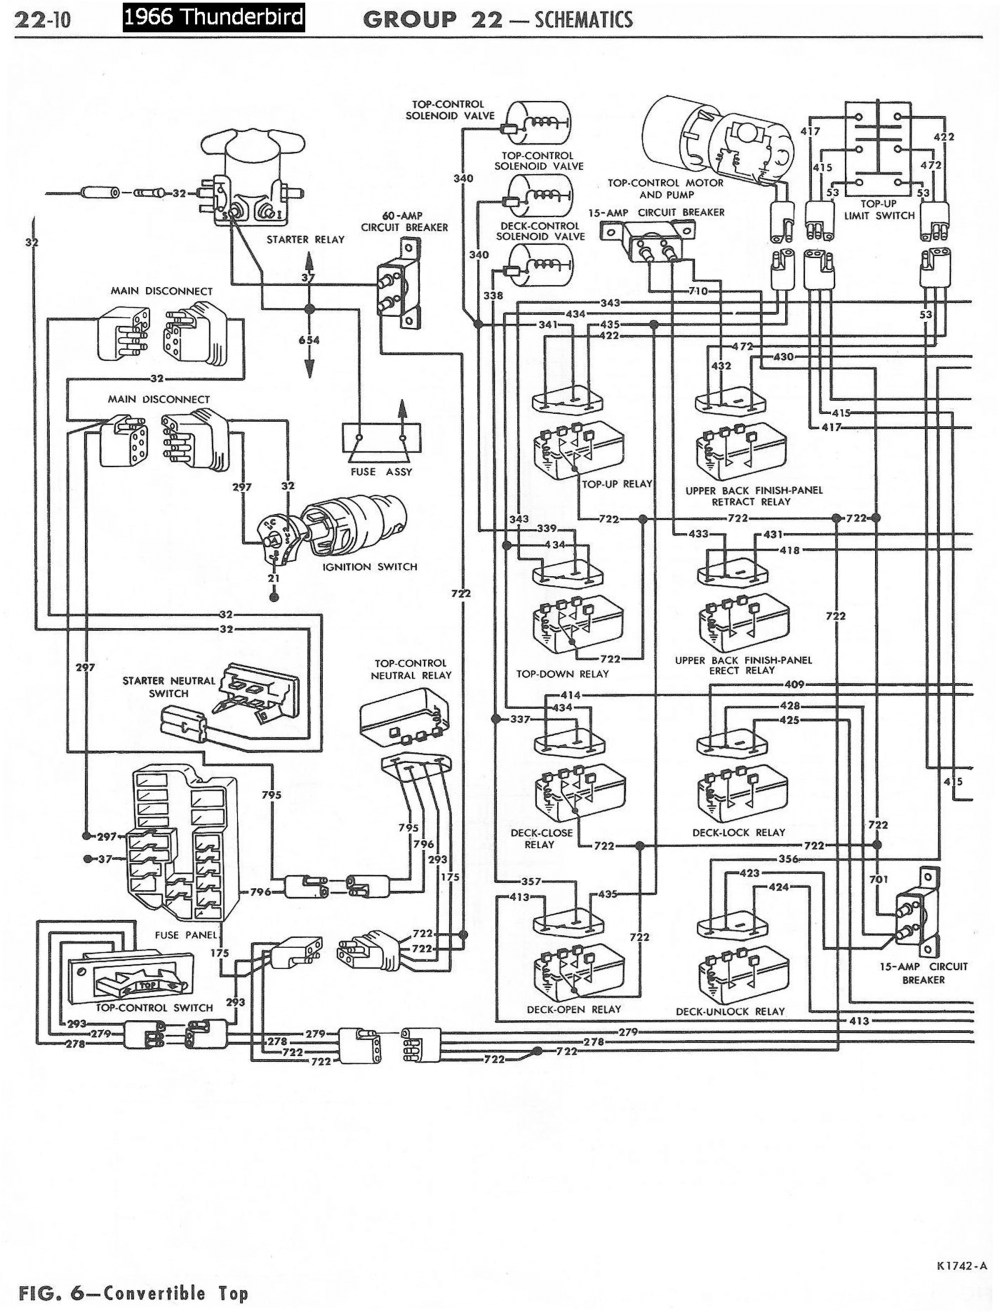 medium resolution of 1958 68 ford electrical schematics rh squarebirds org 73 thunderbird 69 thunderbird